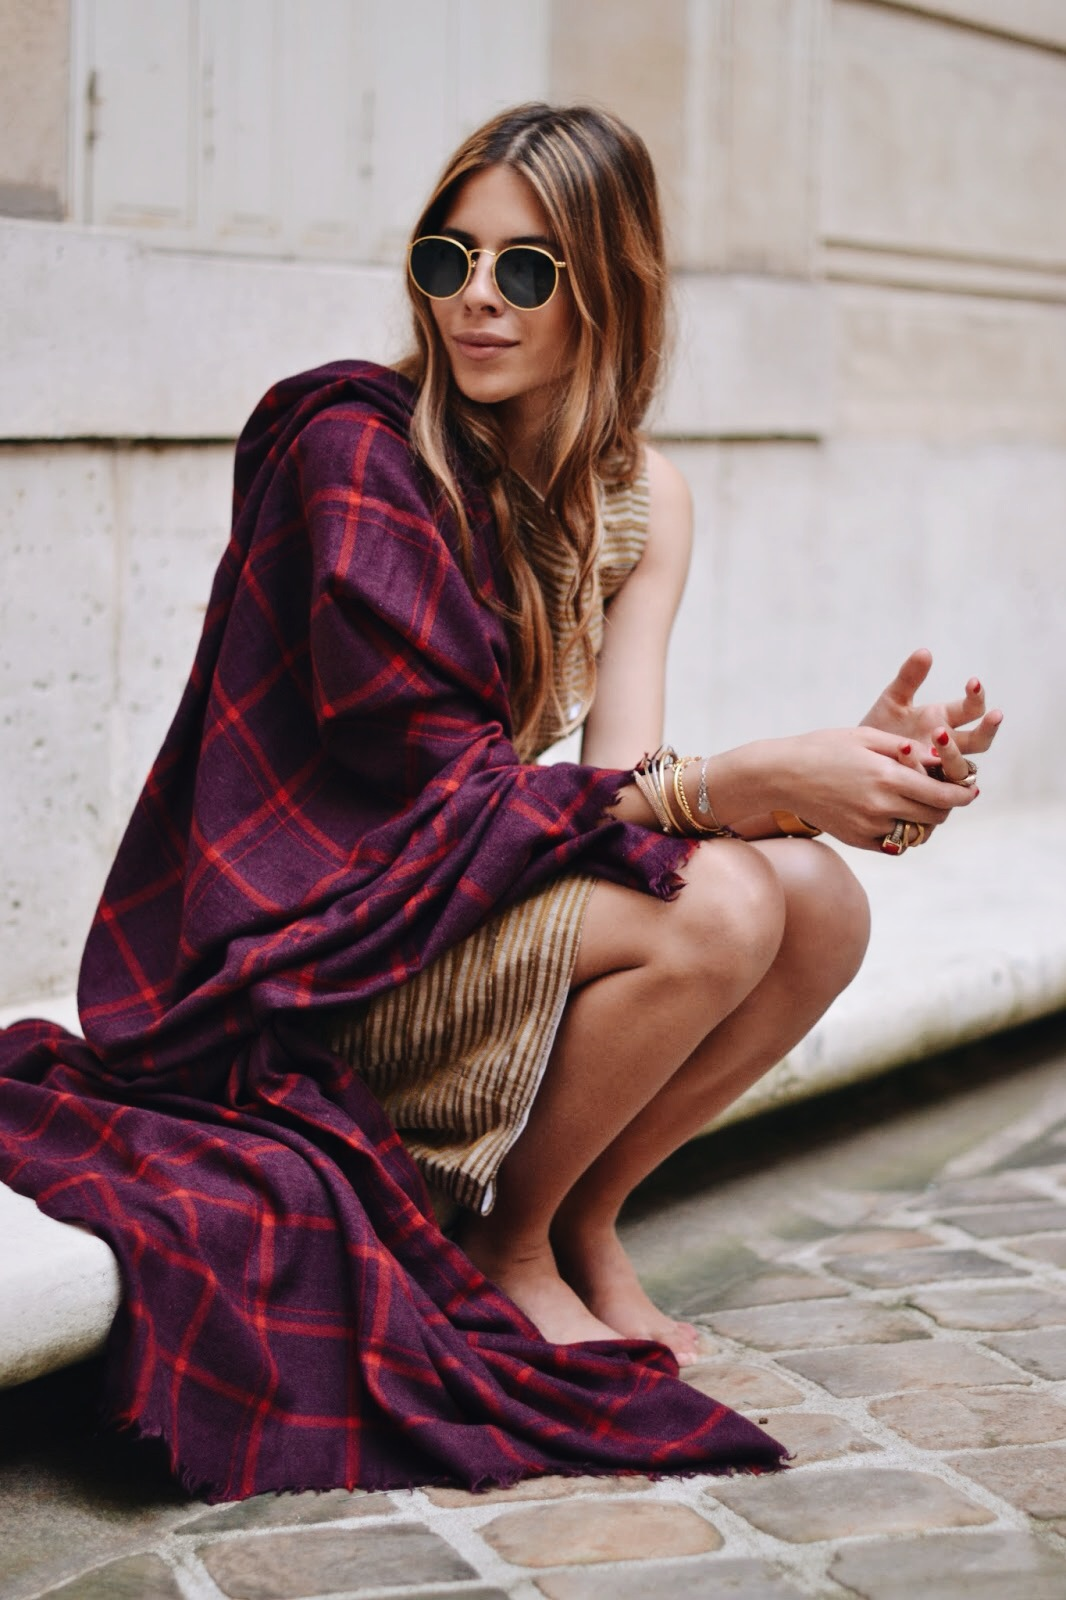 Maja Wyh is wearing a shirt and skirt from Odeeh, and the plaid scarf is from Comptoir des Cotonniers